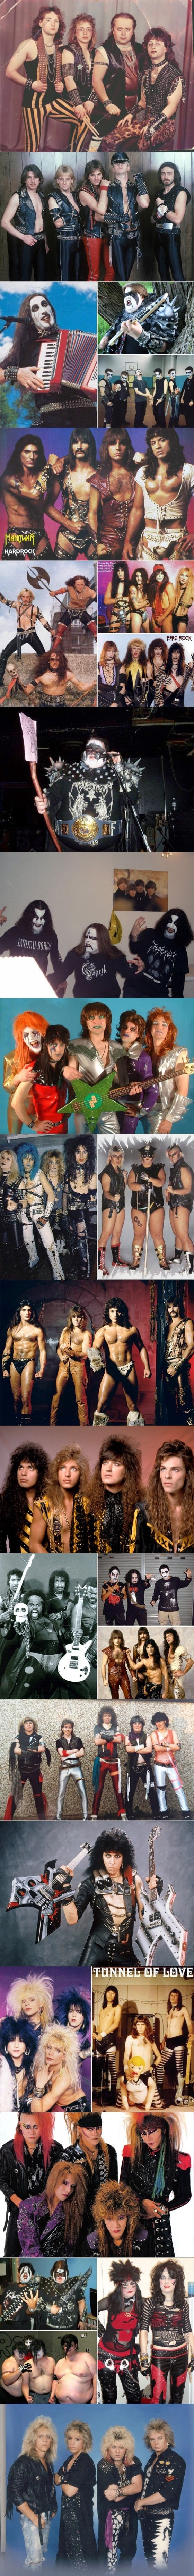 Awkward pictures of metal bands